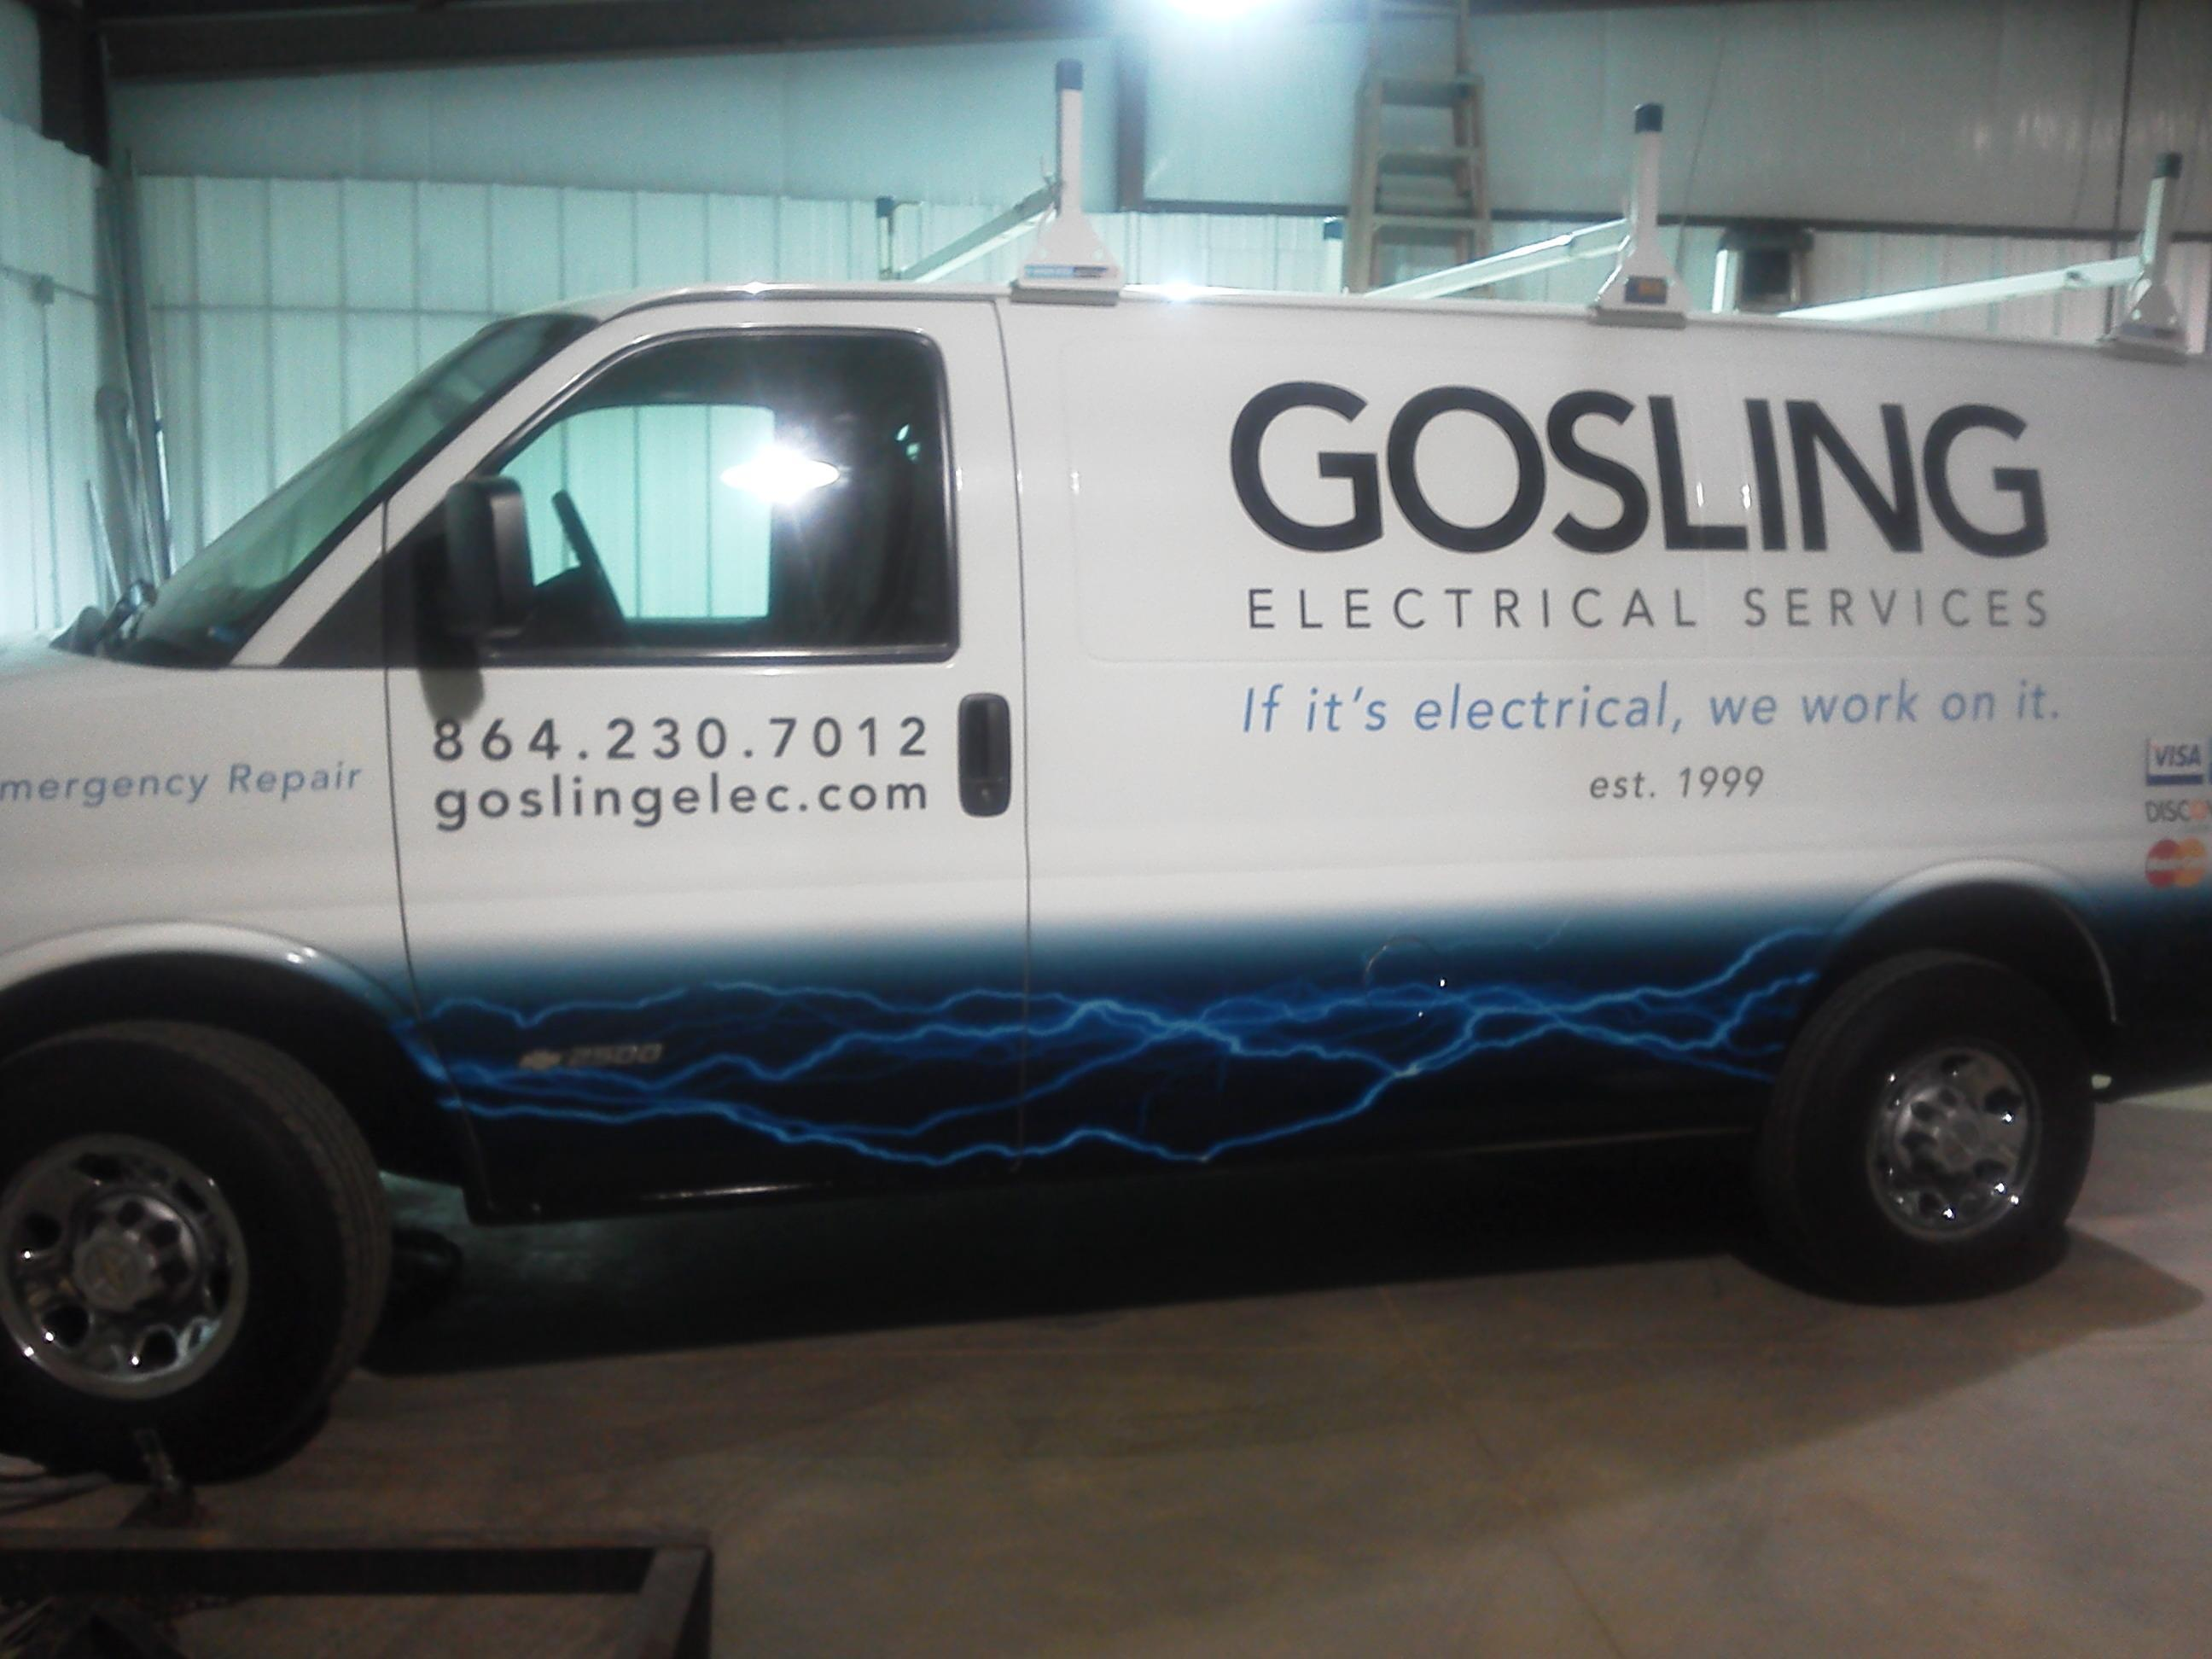 Gosling Electrical Services